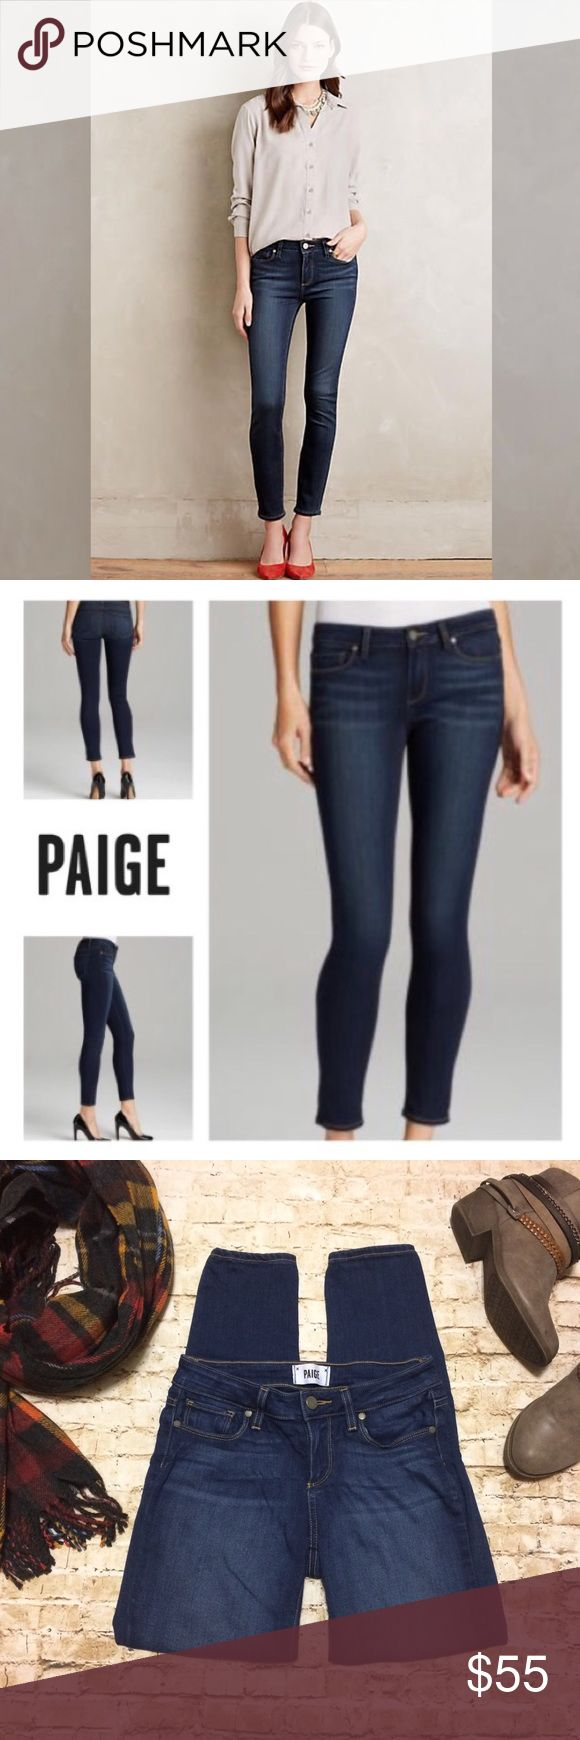 "⚡️Flash Sale! Paige Verdugo Ankle Skinny Jeans Gorgeous Paige Jeans in excellent condition. Super stretchy, low rise fit, skinny leg & slightly cropped length. Perfect year around: w/ tall boots & a sweater in cold weather, flats & a tank in summer. Waist 13.5"" across unstretched (but can definitely stretch bigger). Inseam 27"". Small Paige leather logo on hip. Purposeful whiskering on front & back of seat area. Amazingly comfortable, fit almost like jeggings! Purchase at Anthro. ⚡️Flash Sale…"